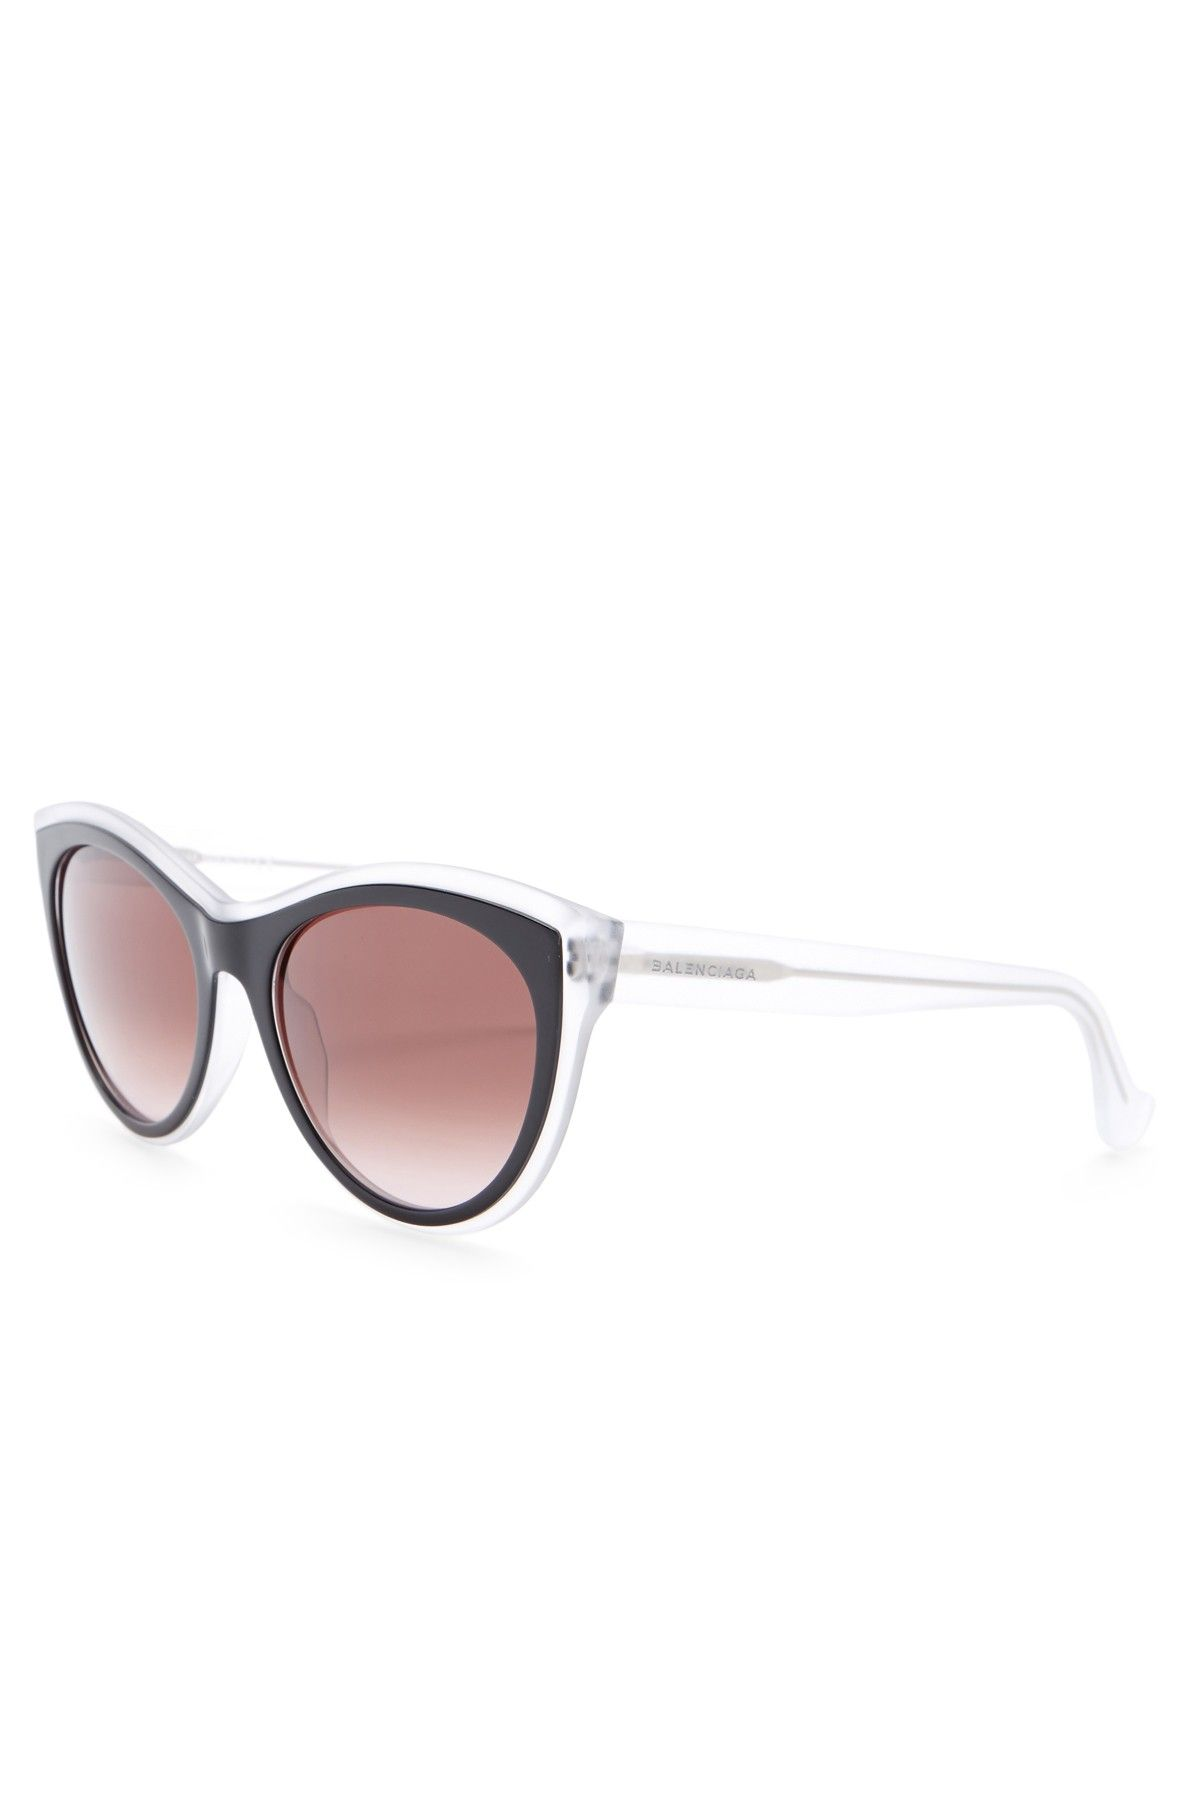 5e26d78fc0d Women s Cat Eye Sunglasses